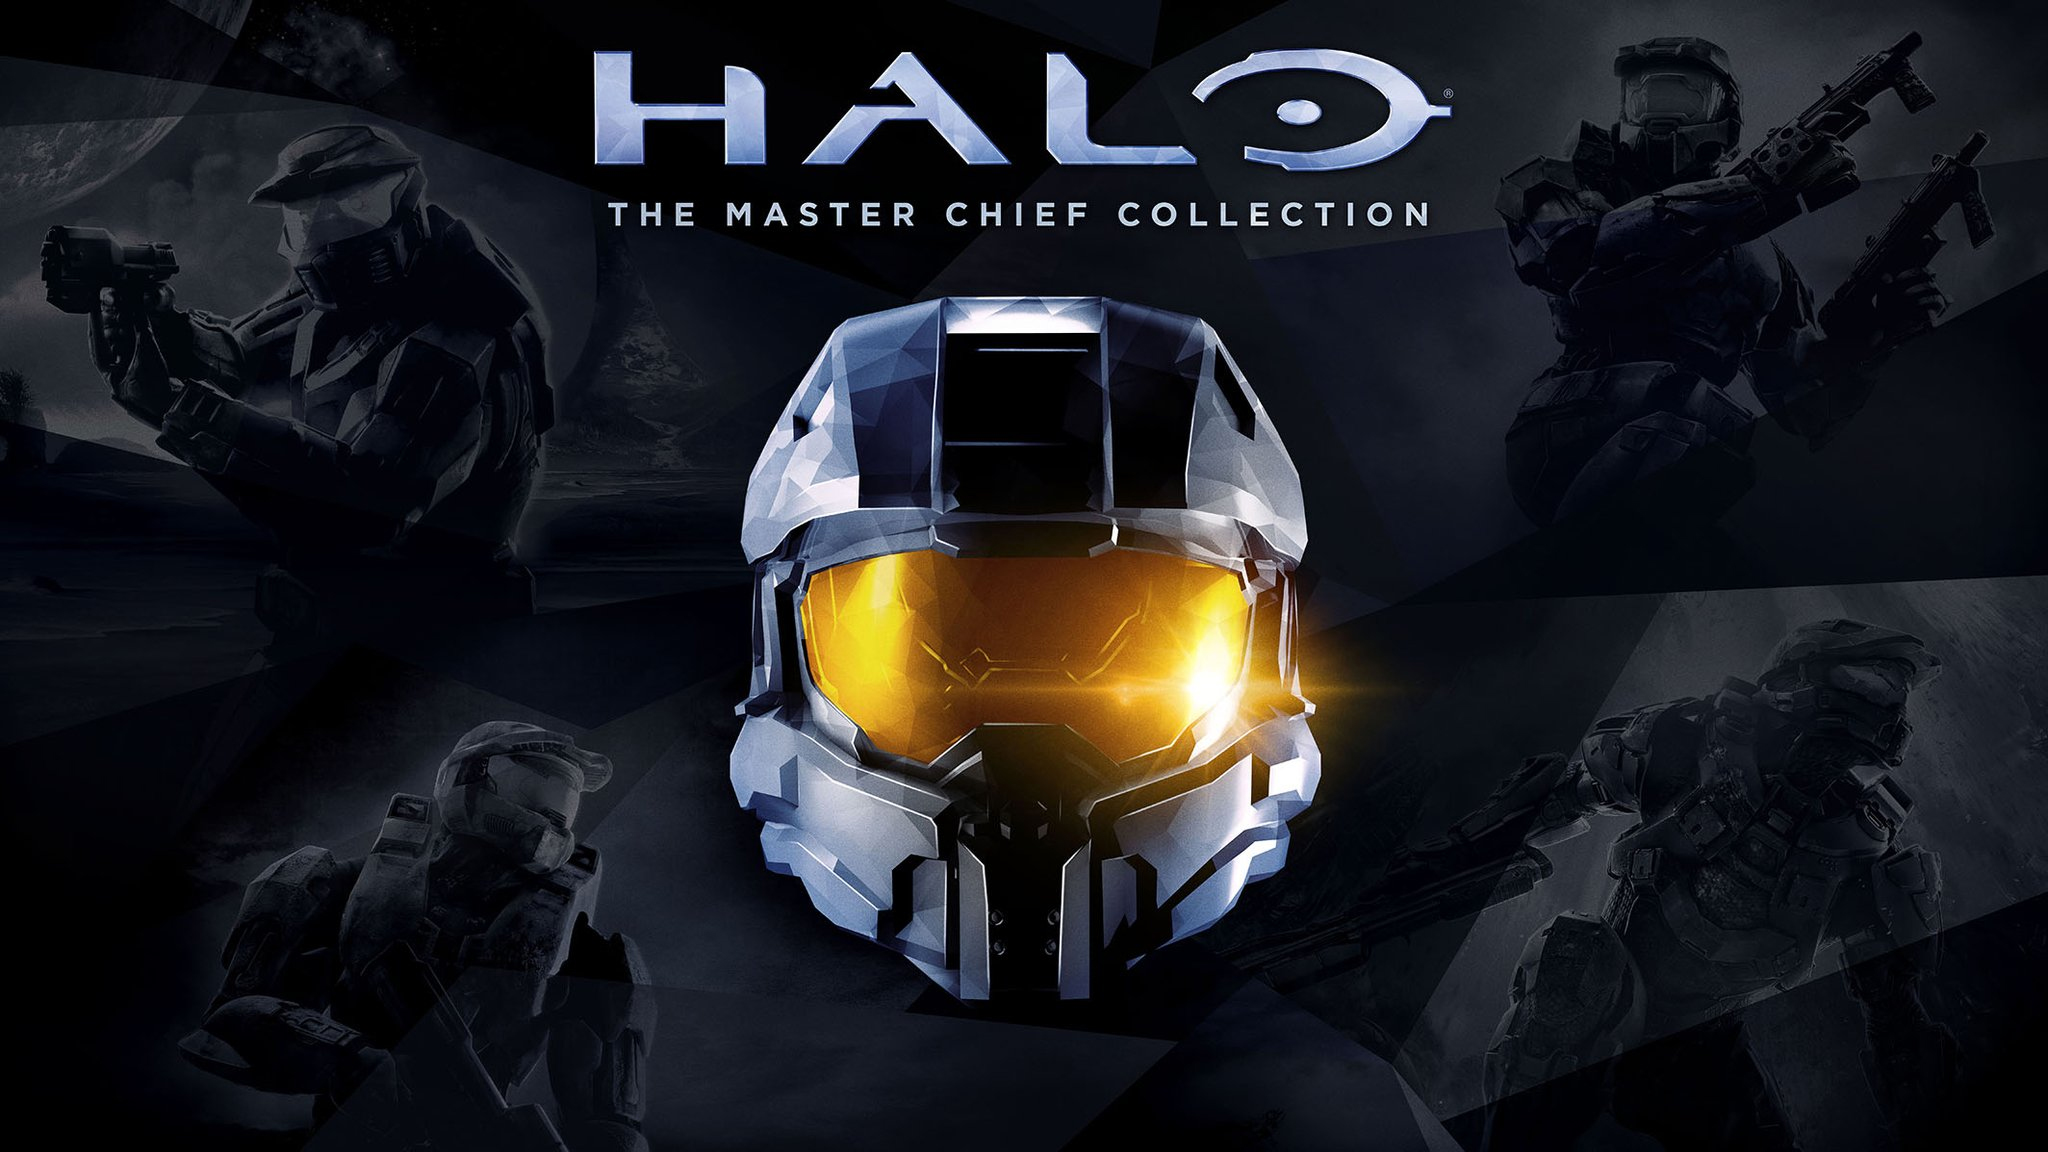 Halo The Master Chief Collection Recibe Su Megaparche 4k Y Hdr